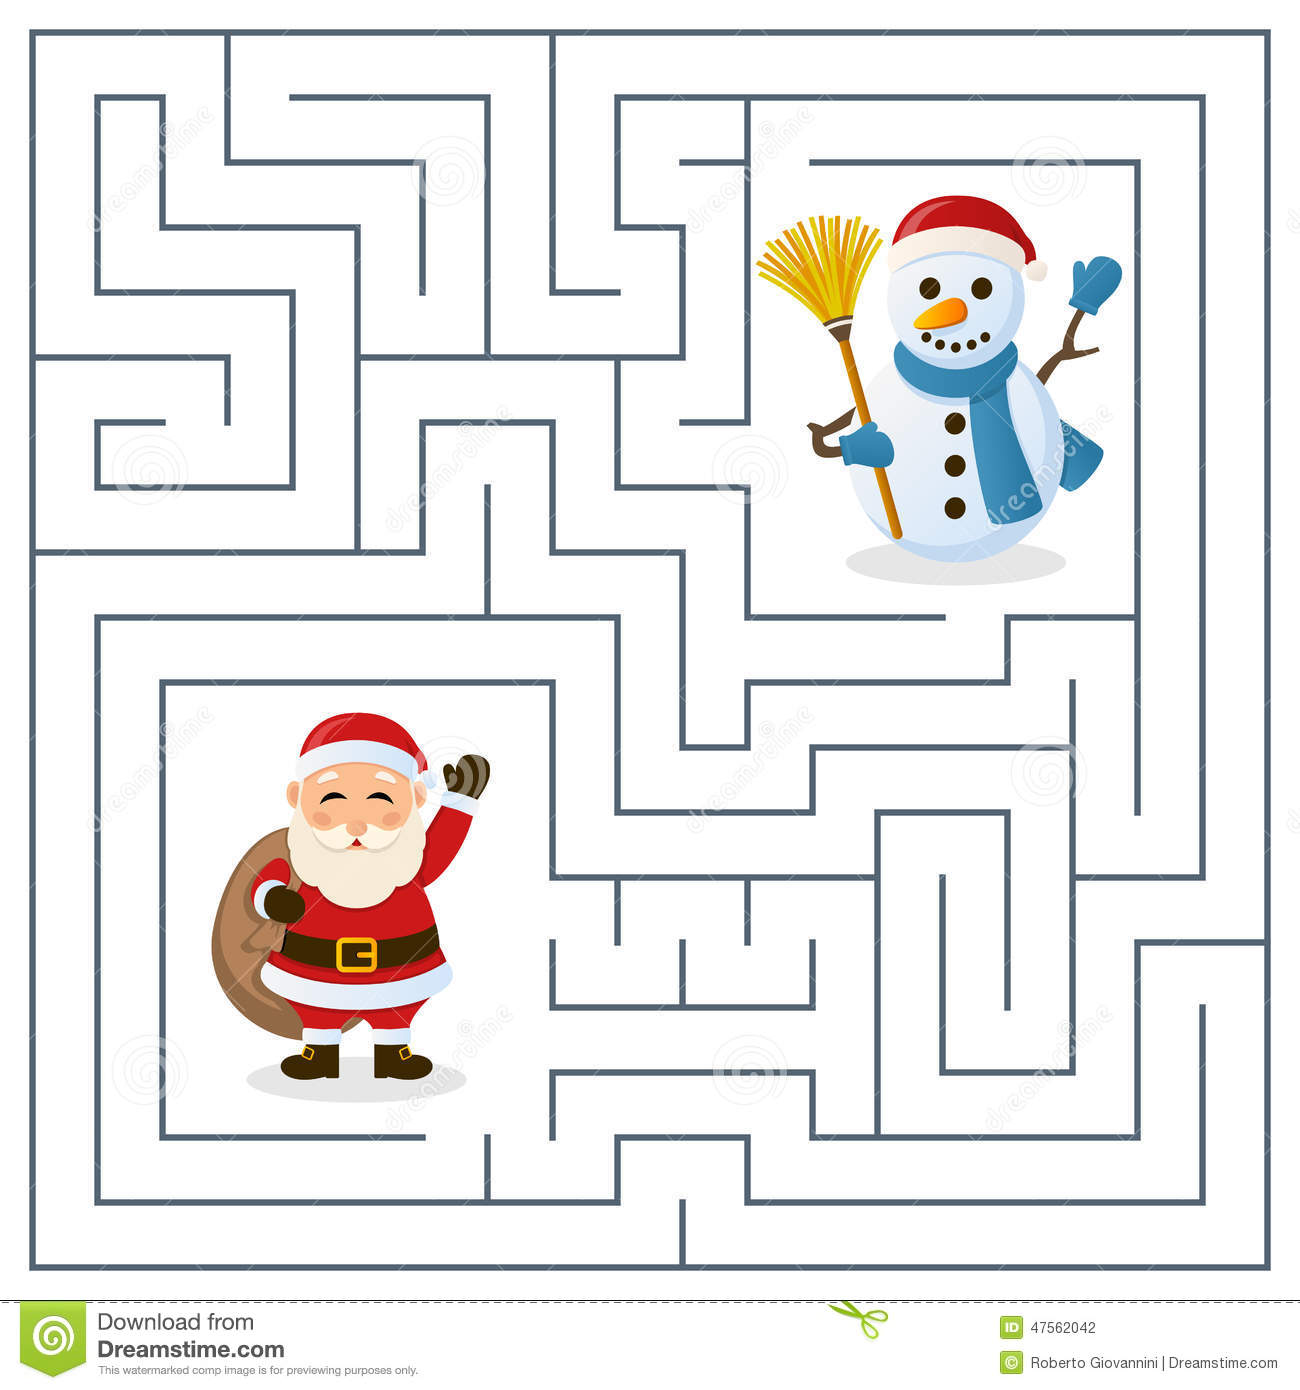 Santa Claus Snowman Maze Kids Christmas Game Children Help Find Way To To Celebrate Christmas Together Eps File on santa claus printable cutouts